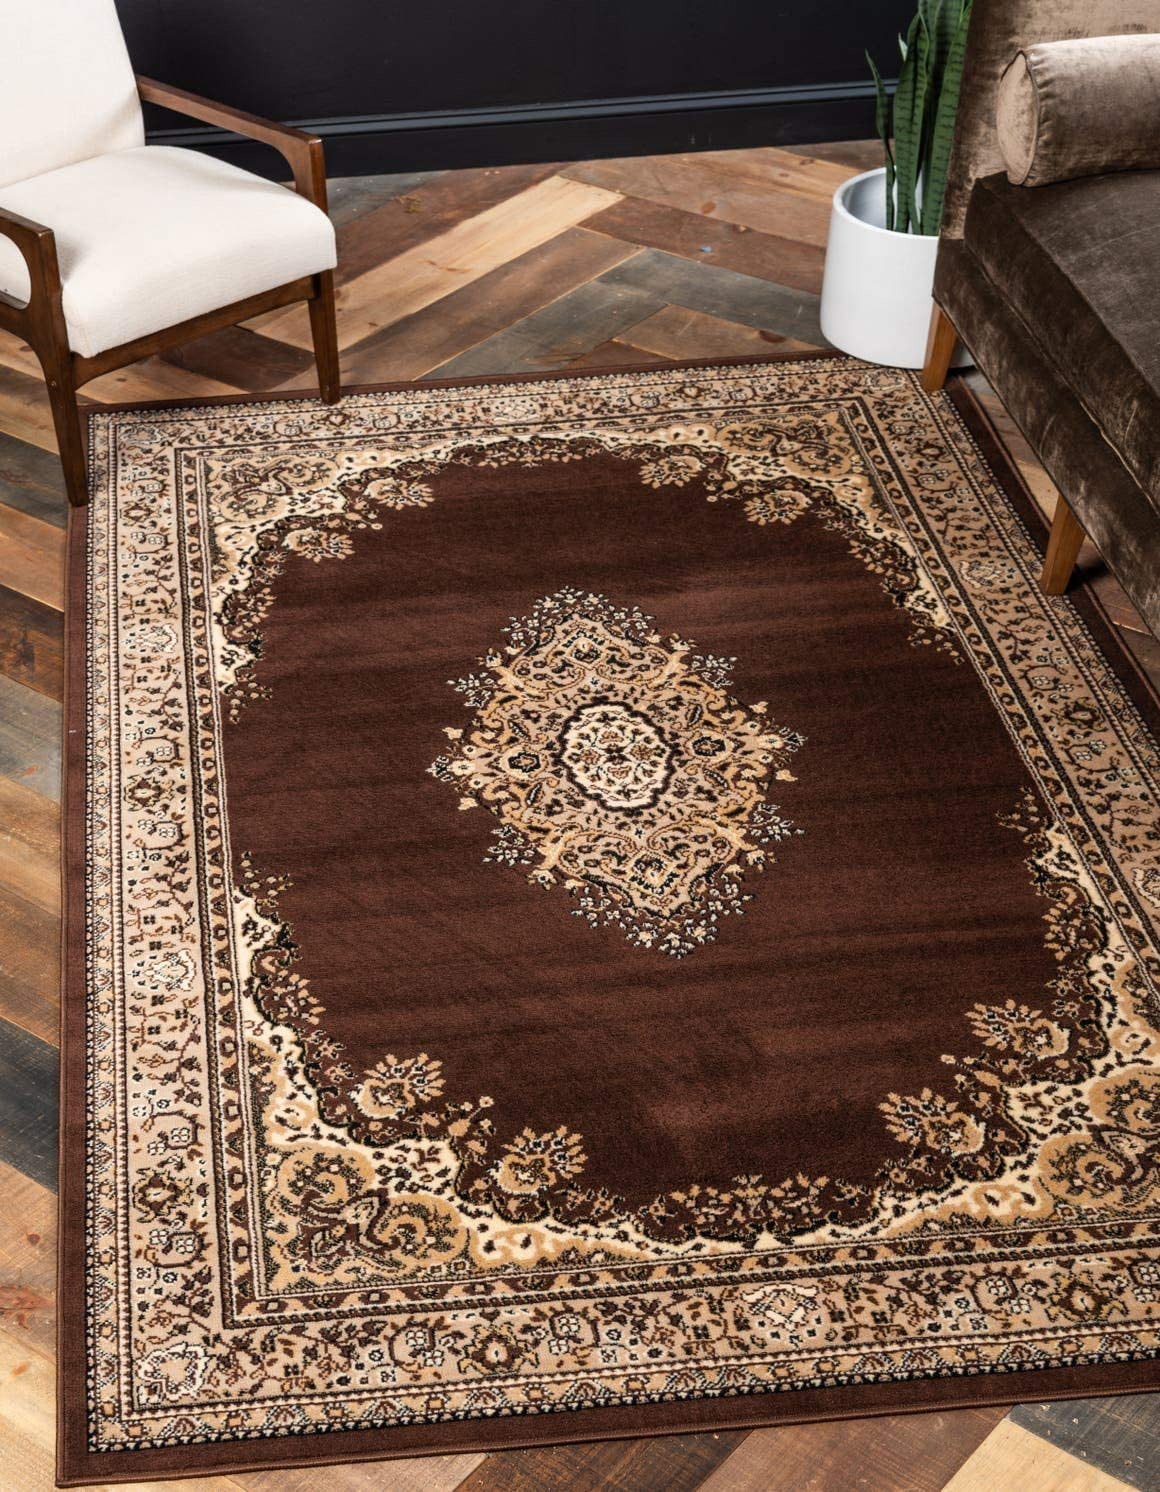 Unique Loom Reza Collection Classic Traditional Brown Area Rug 9 0 x 12 0